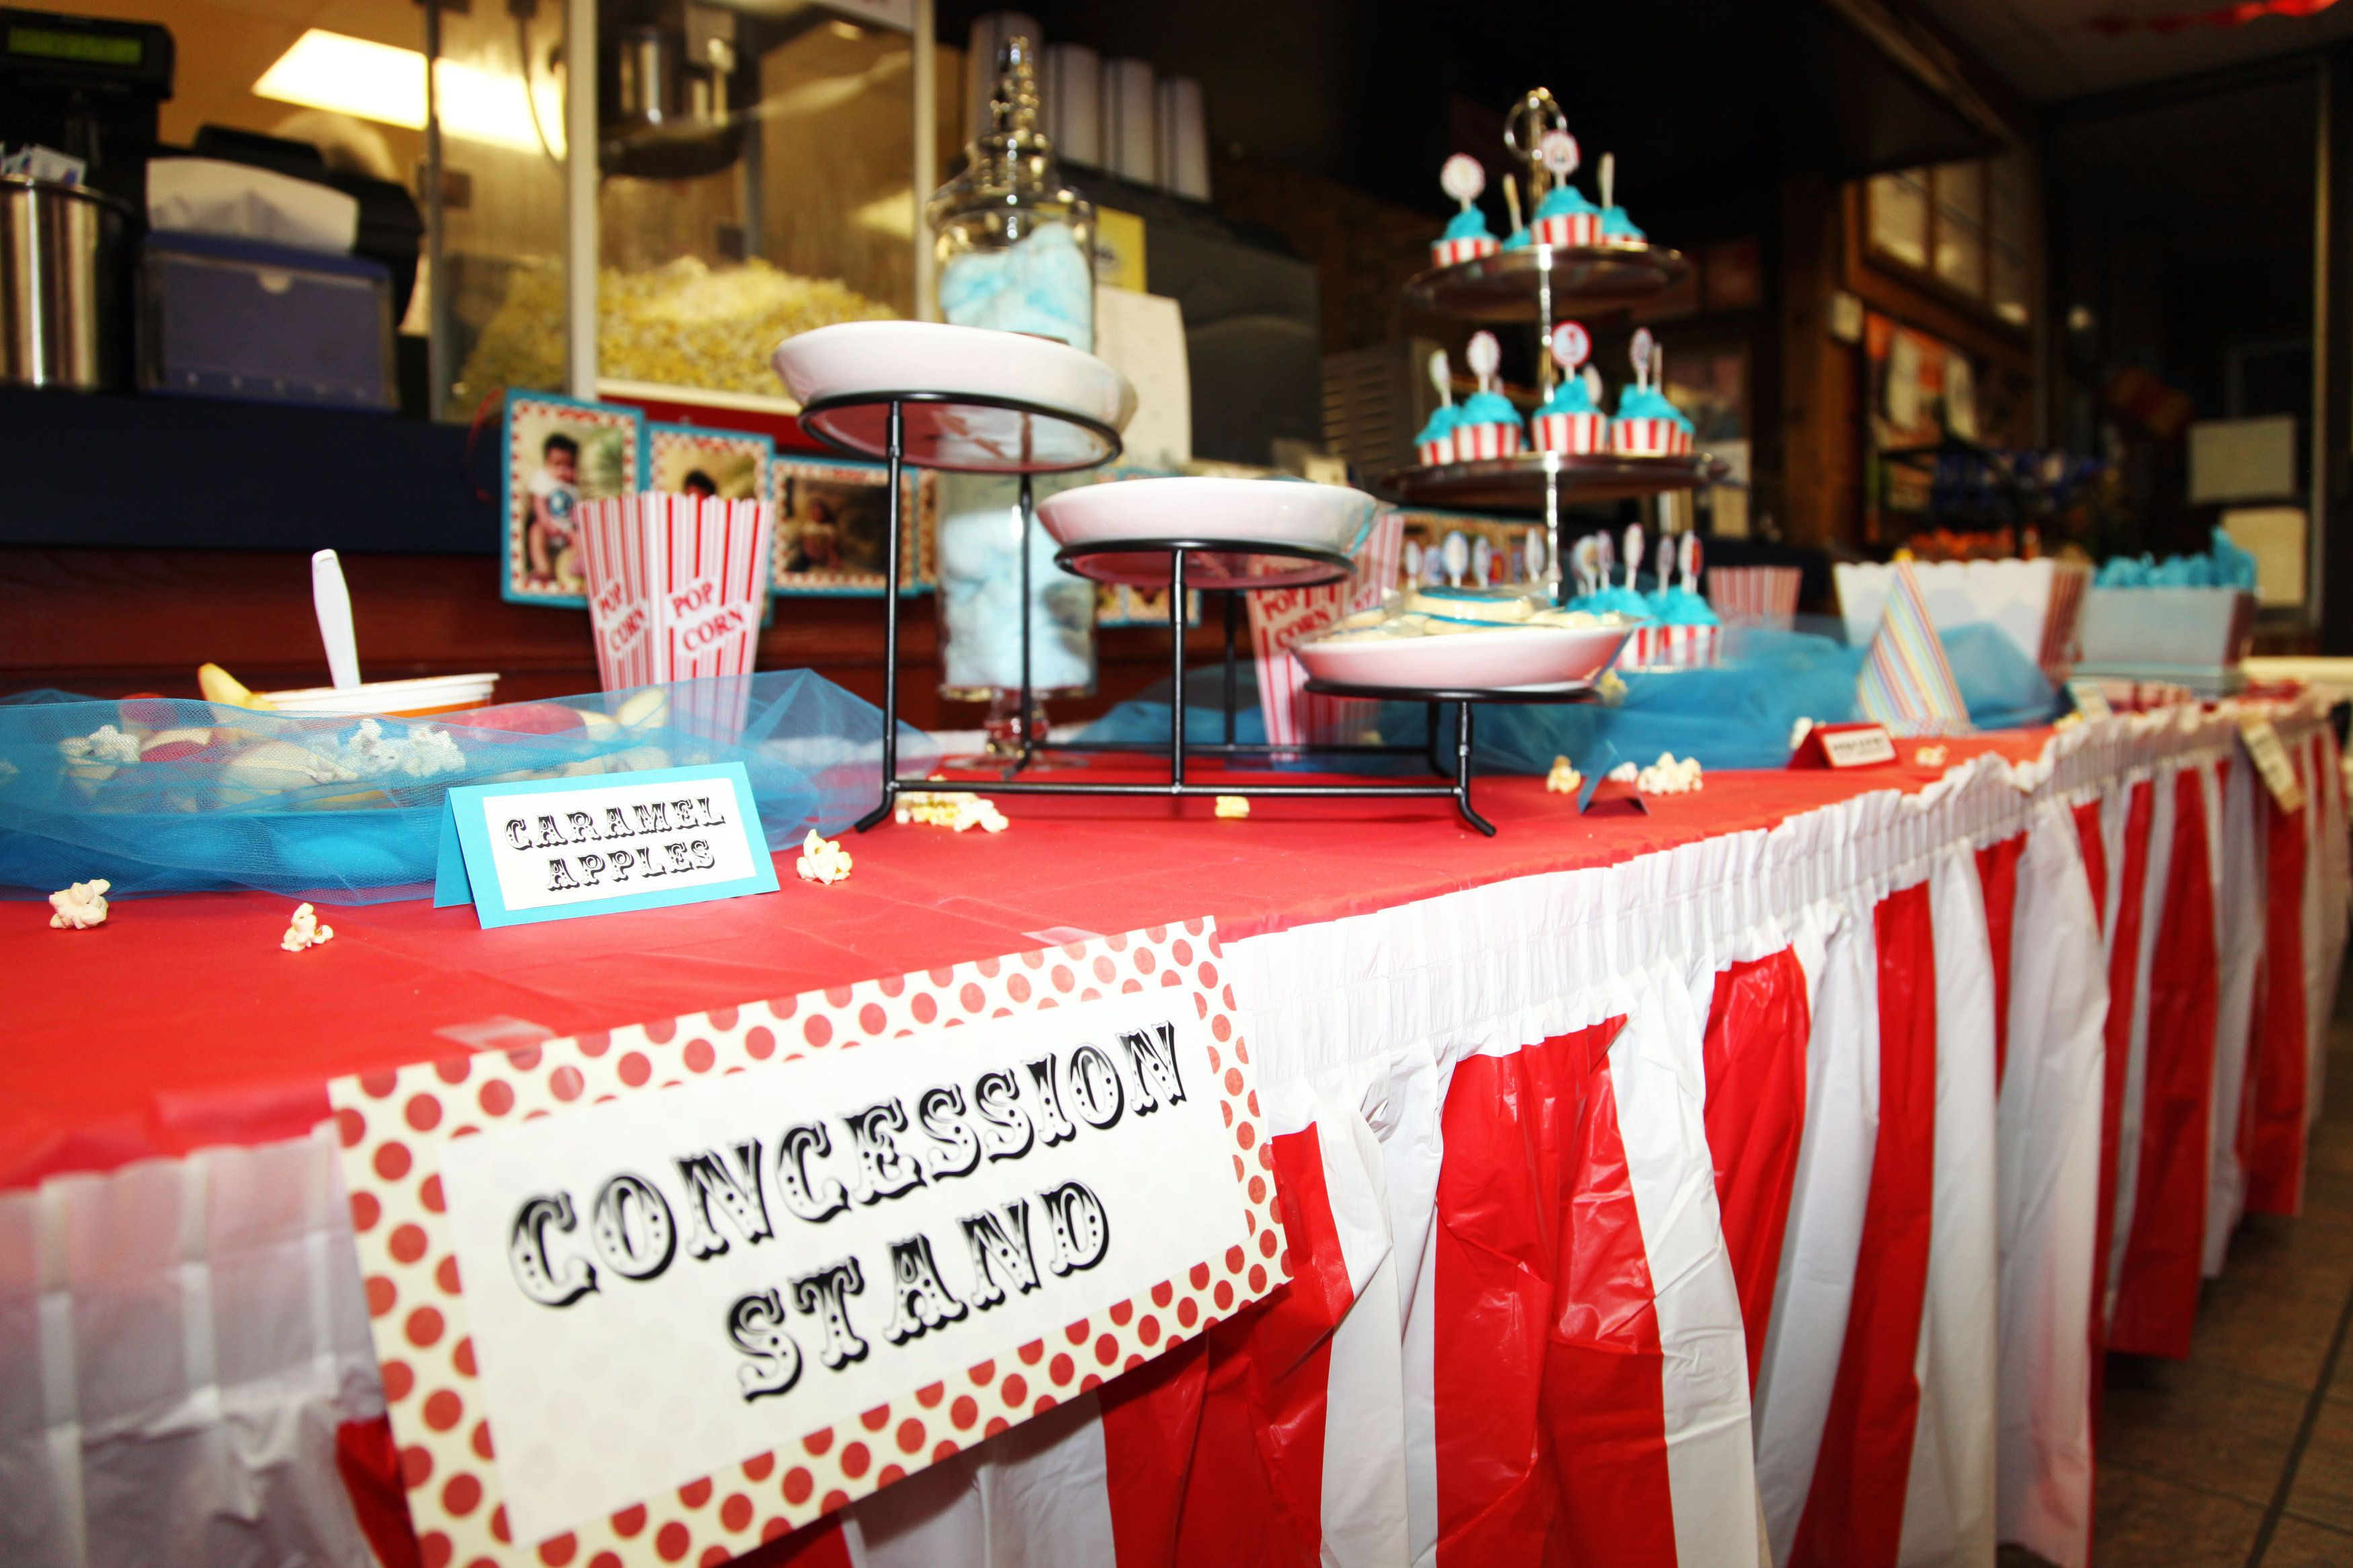 Buffet table skirting - Vintage Circus Birthday Party By Abbie Pari Concession Stand Signs Posted On Buffet